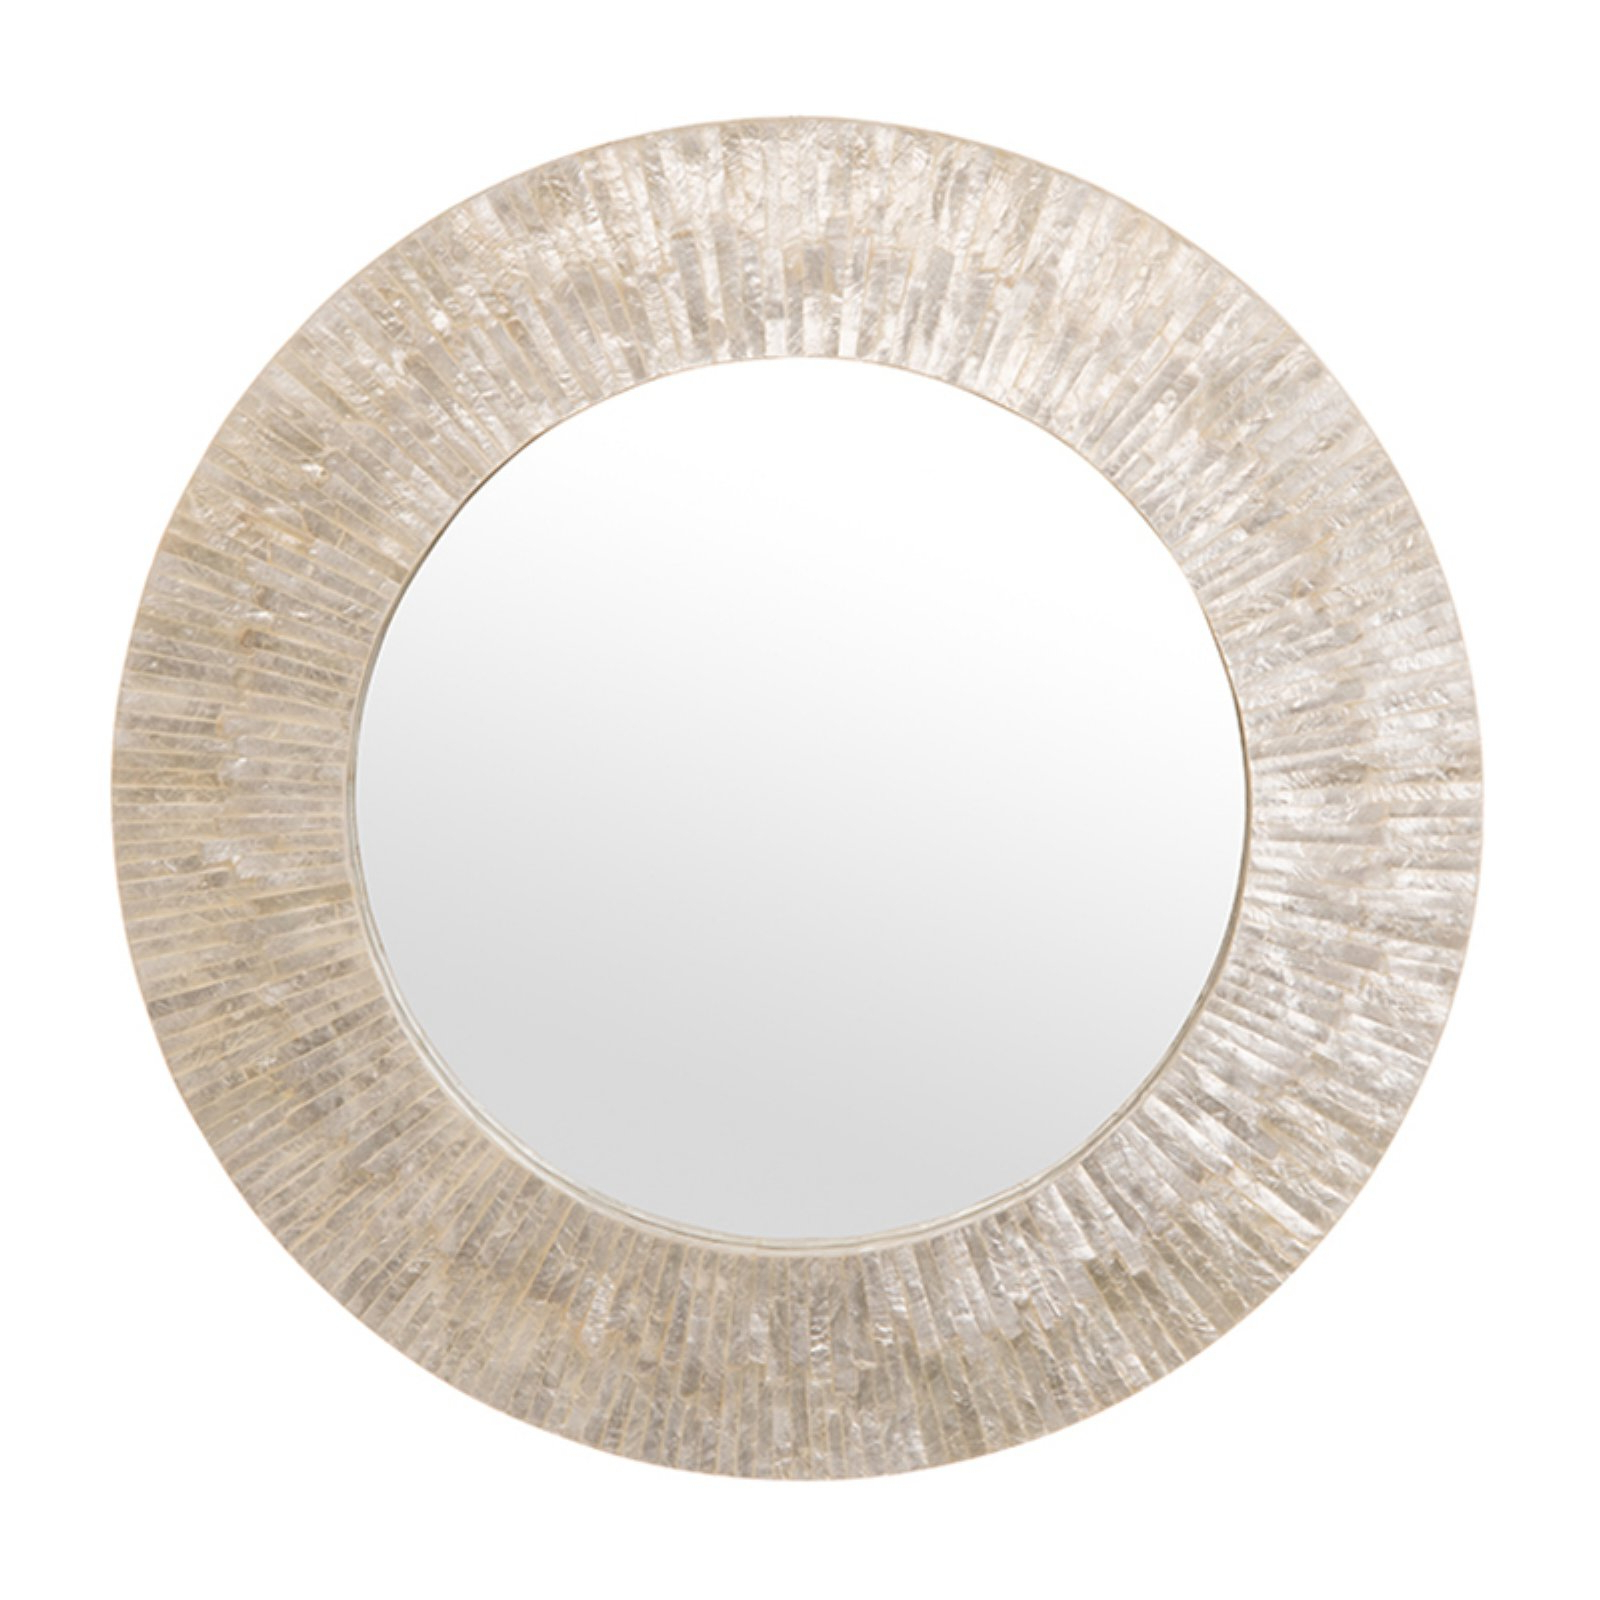 Kouboo Round Capiz Seashell Sunray Wall Mirror – 24W X 24H Within Most Current Sun Ray Wall Mirrors (View 3 of 20)